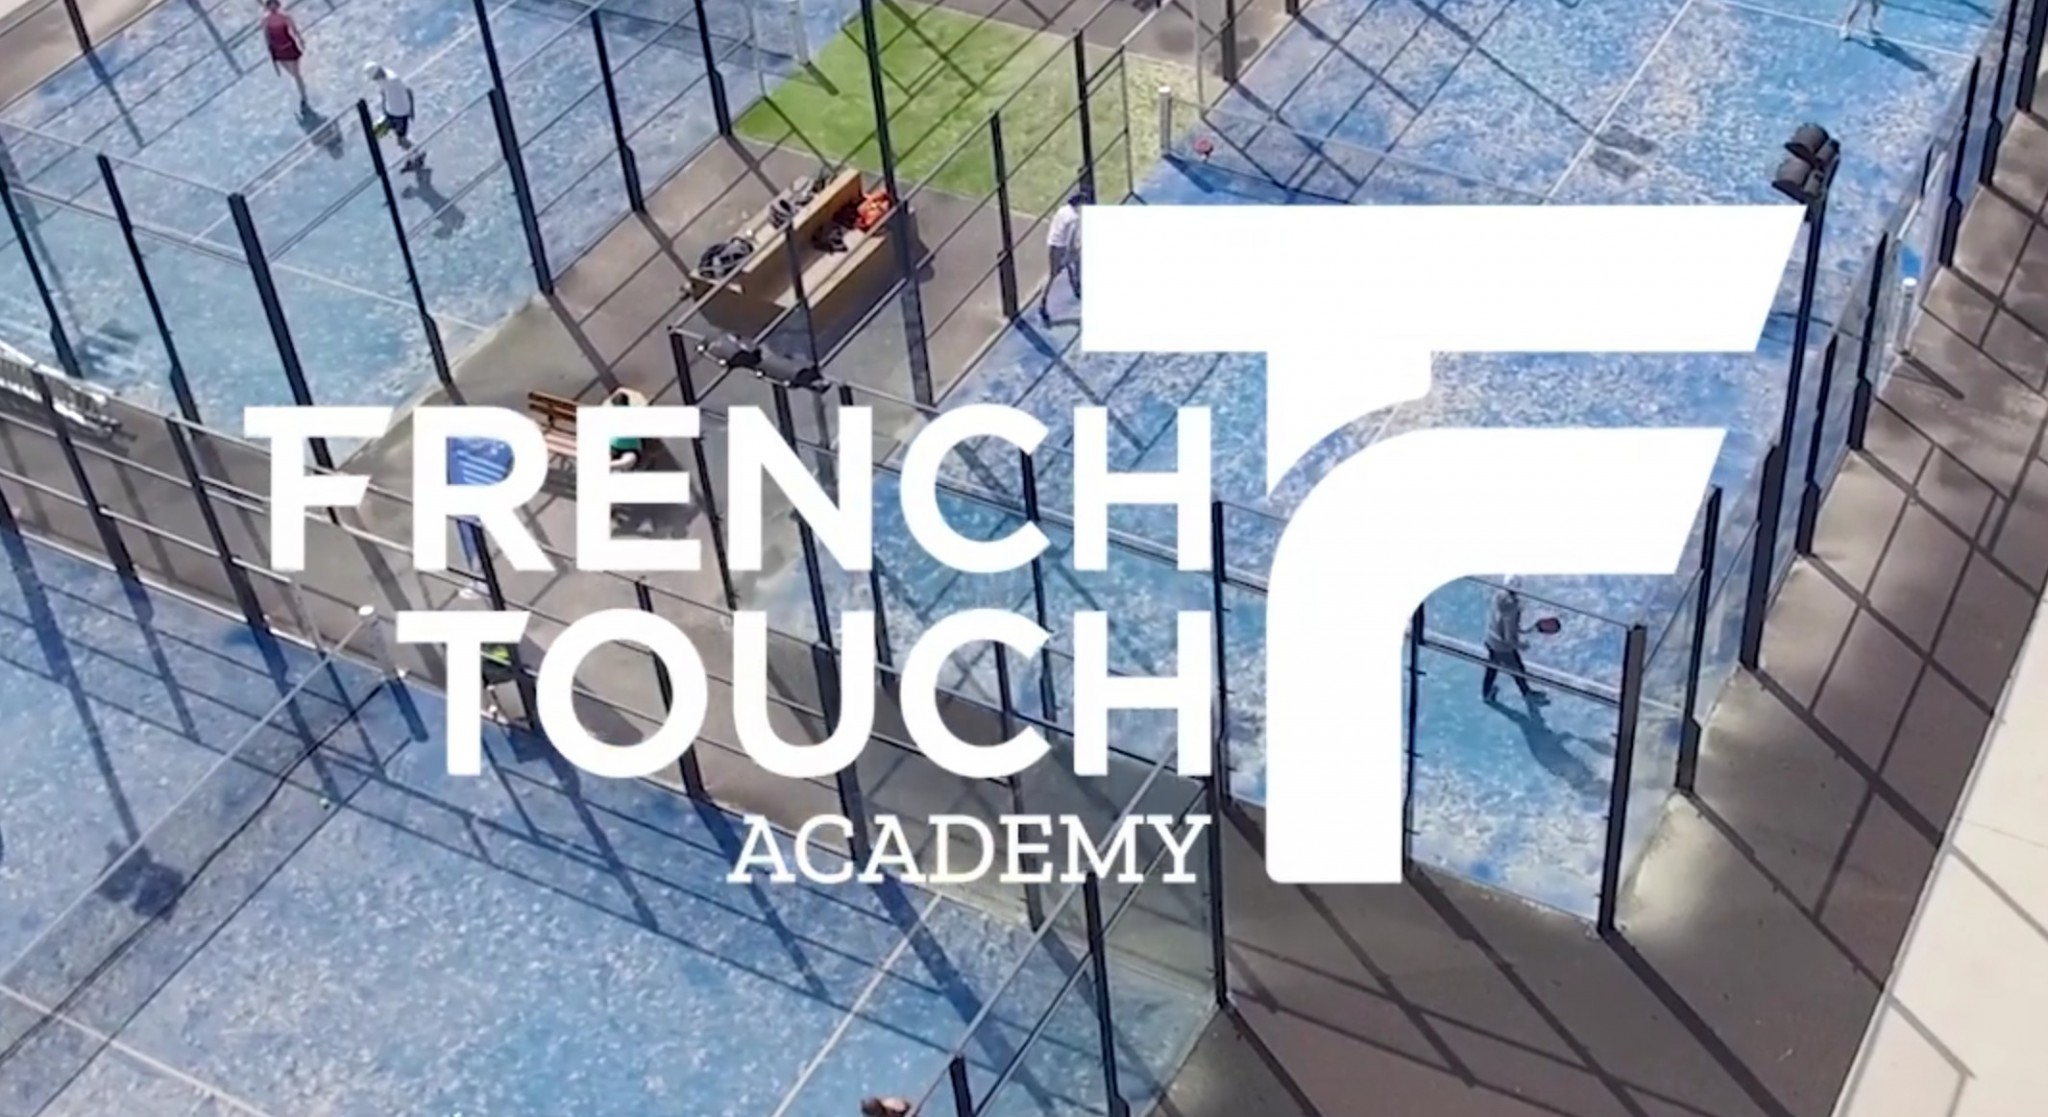 A very padel at the French Touch Academy